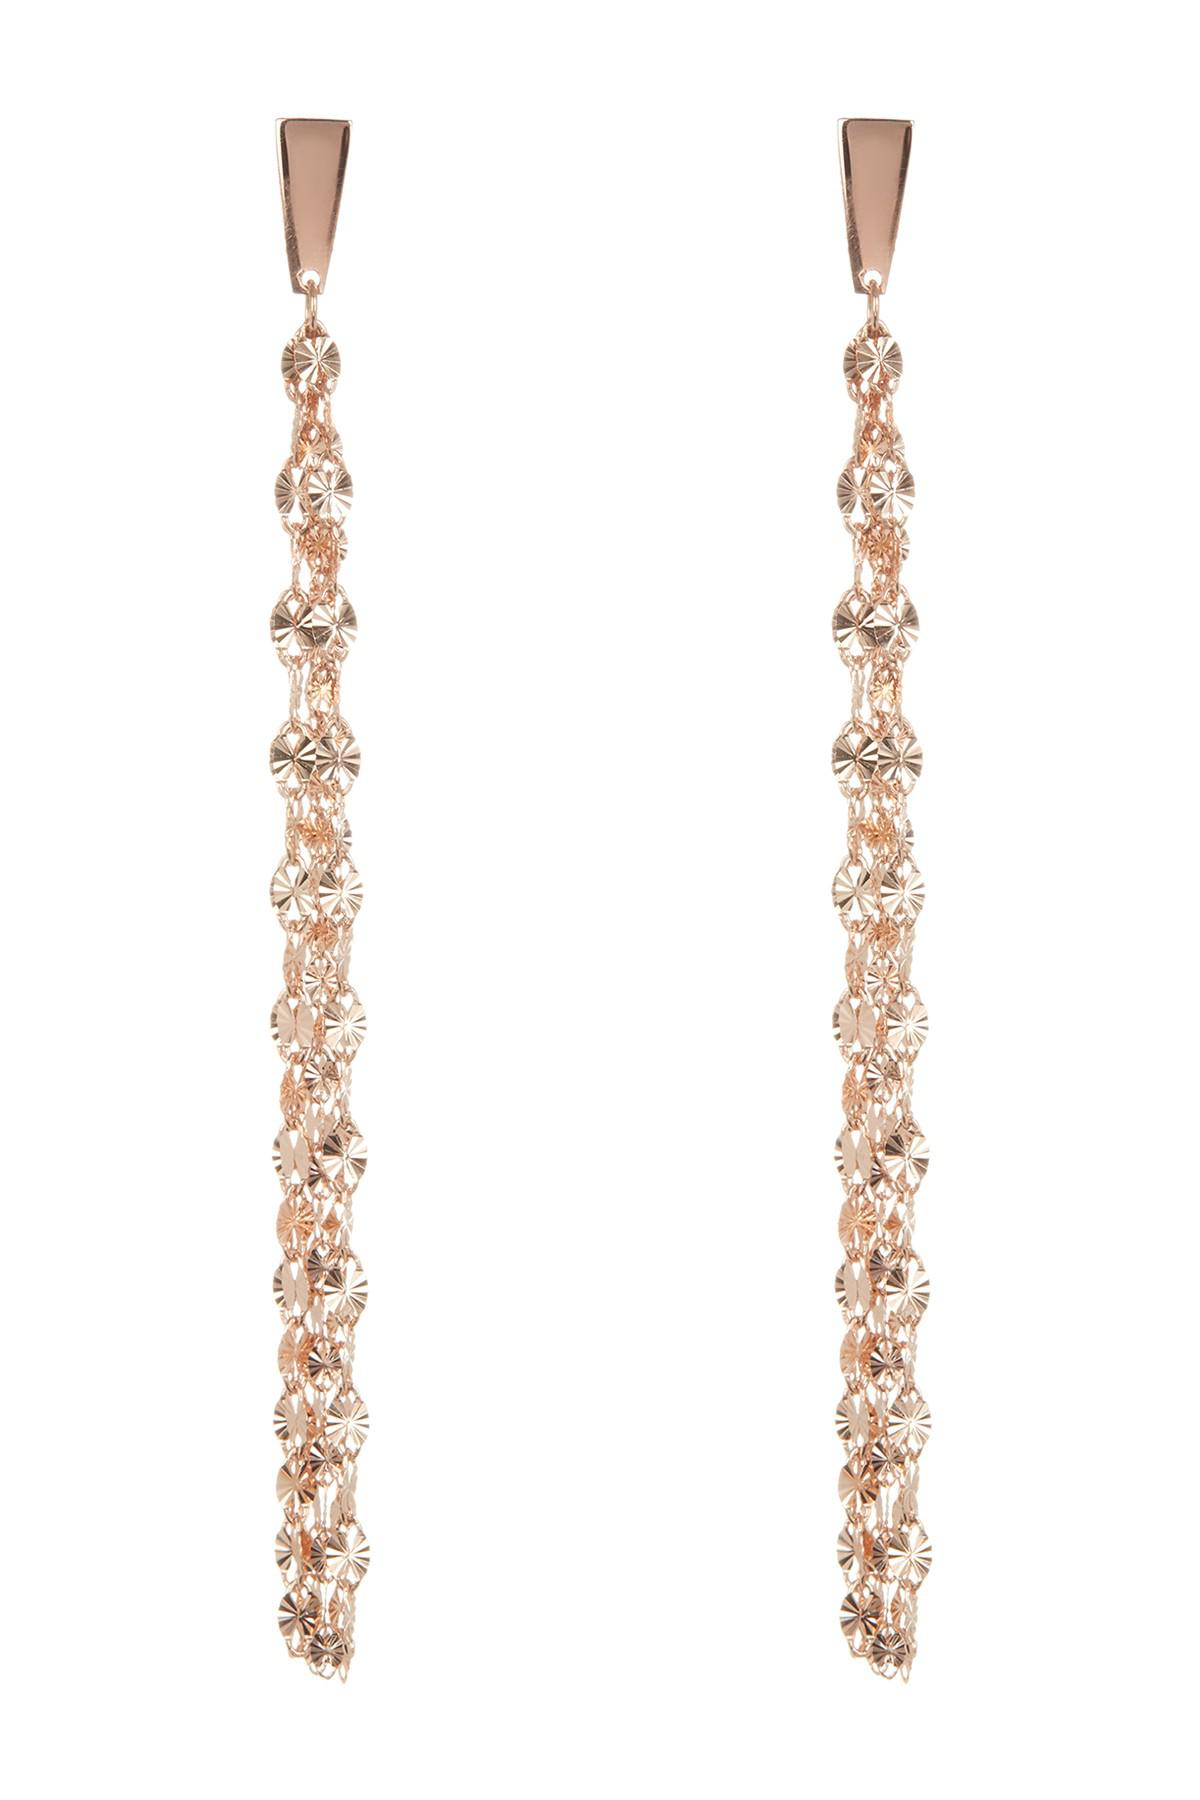 Lyst Lana Jewelry 14k Rose Gold Fringe Earrings in Metallic